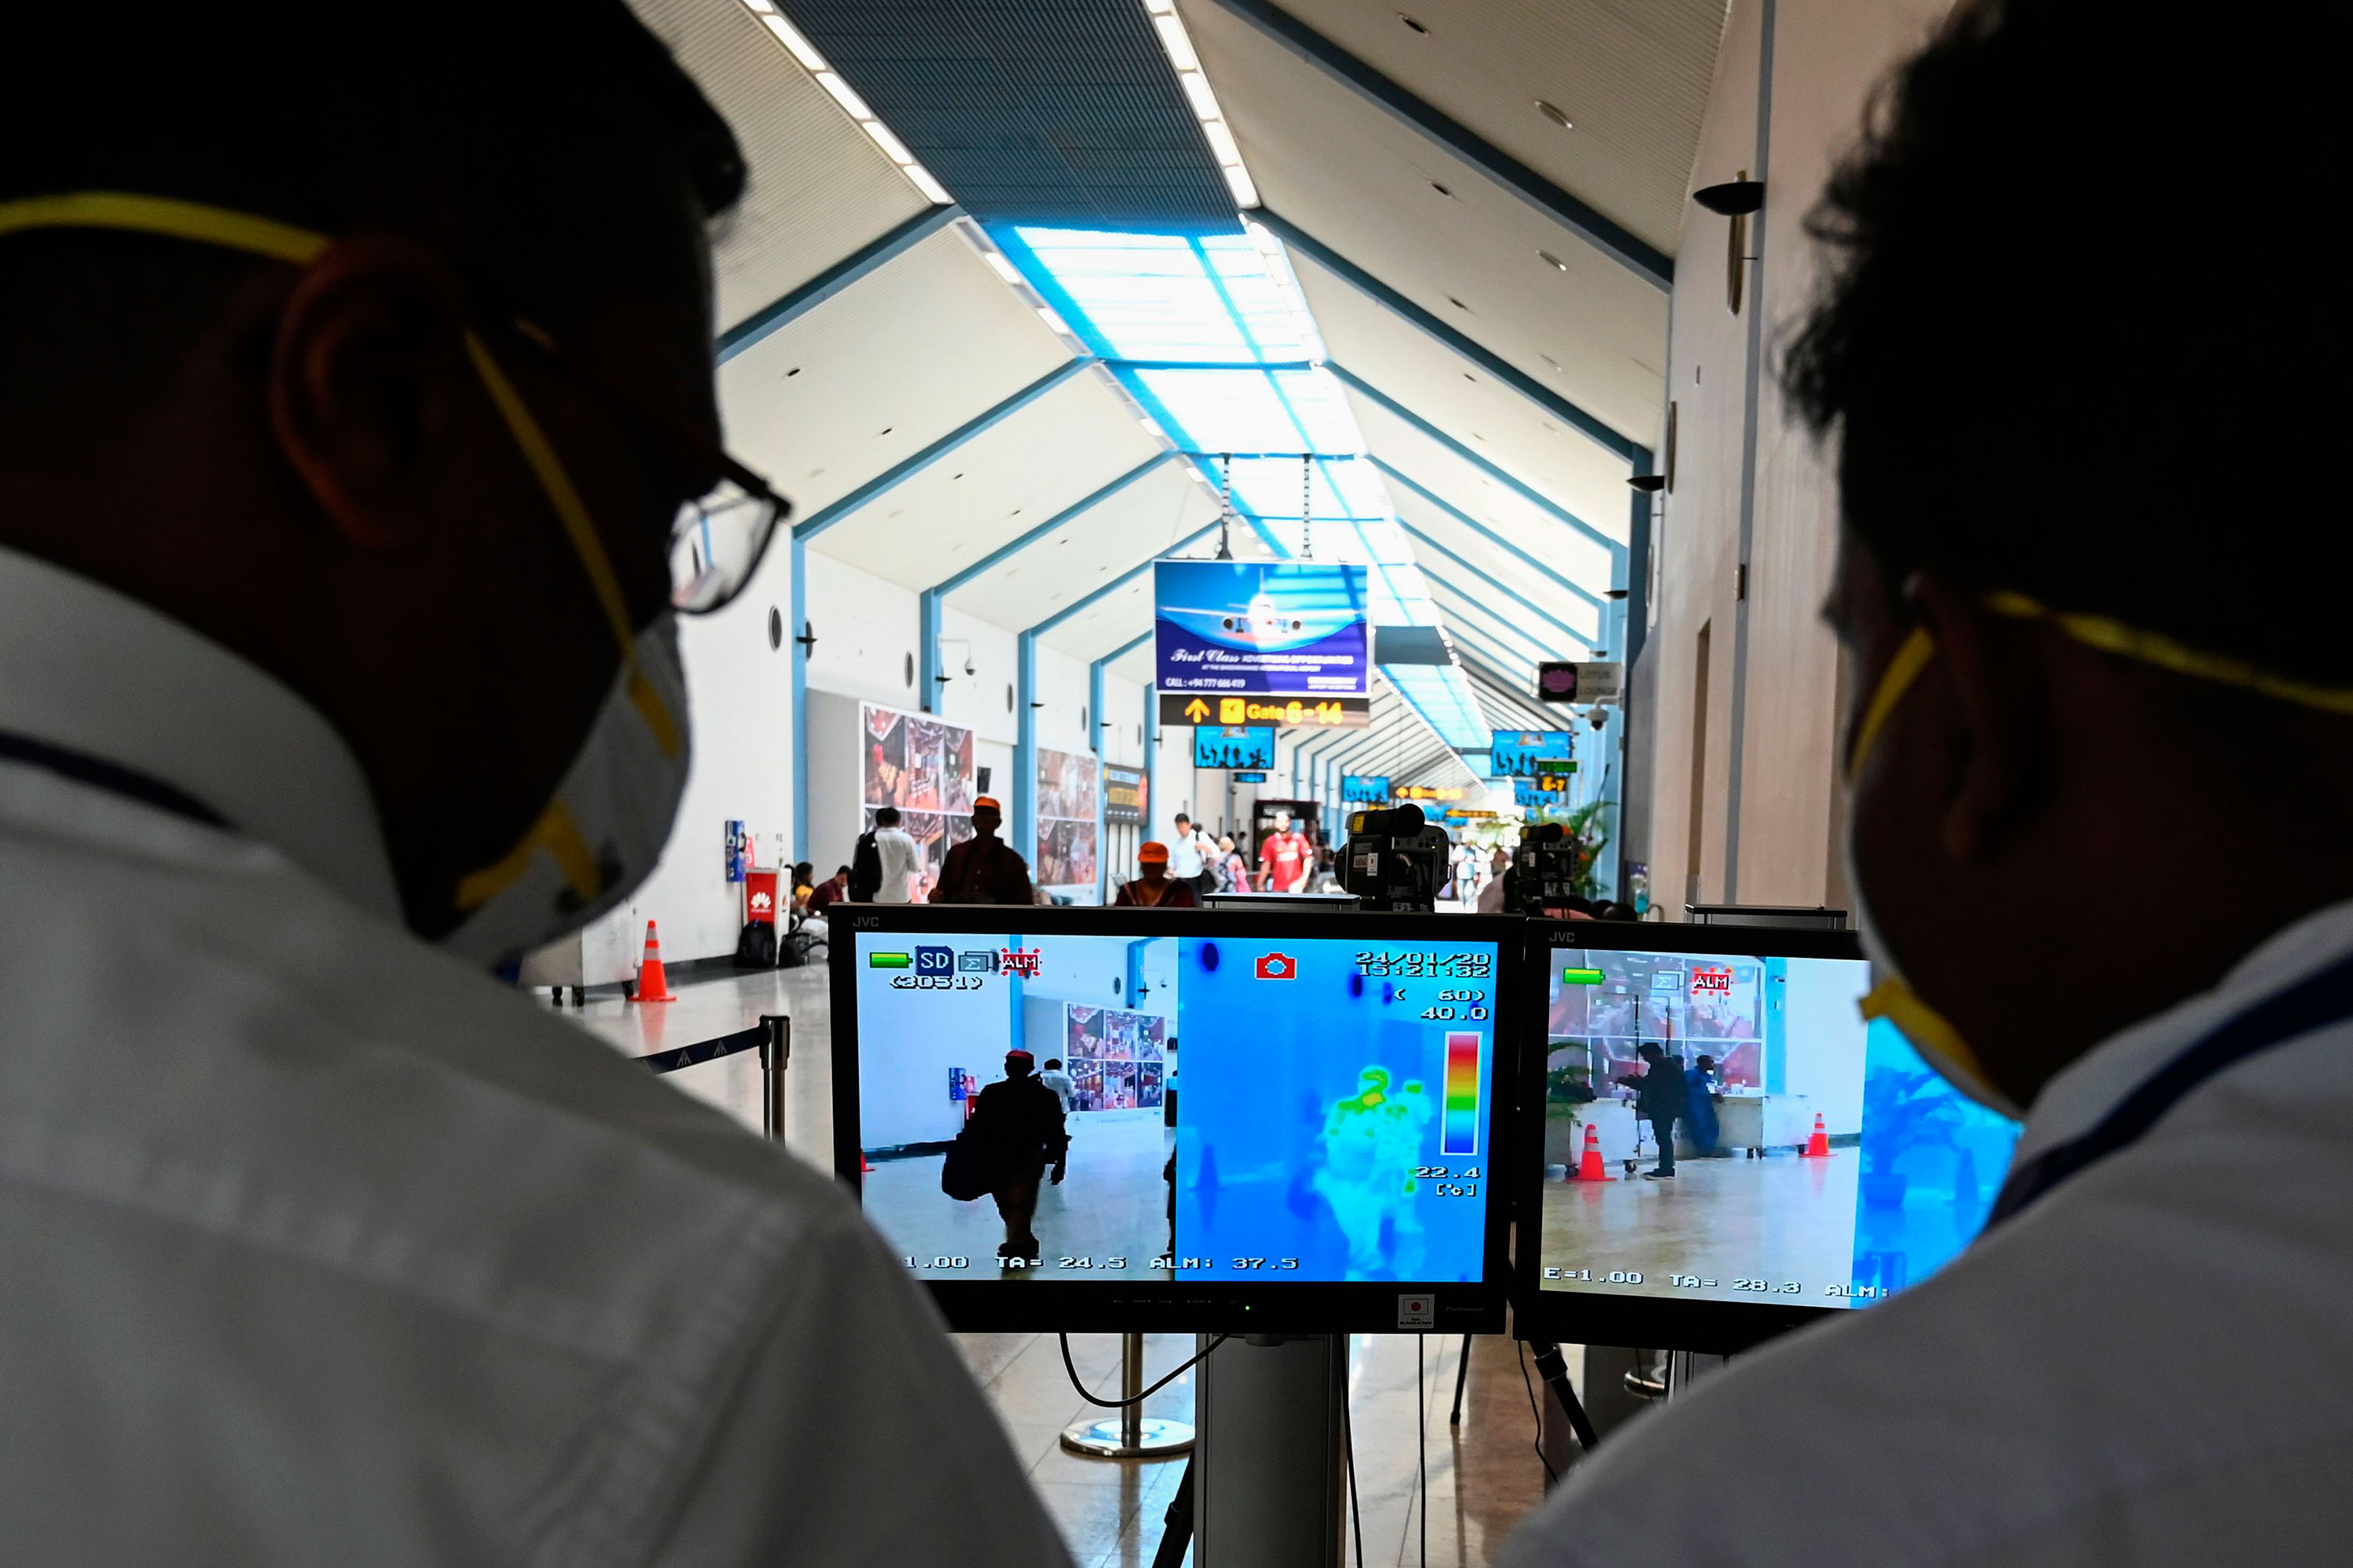 Airport employees monitor screens of a thermal scanner to check body temperature of arriving passengers, at Bandaranaike International airport in Katunayake, Sri Lanka on January 24.